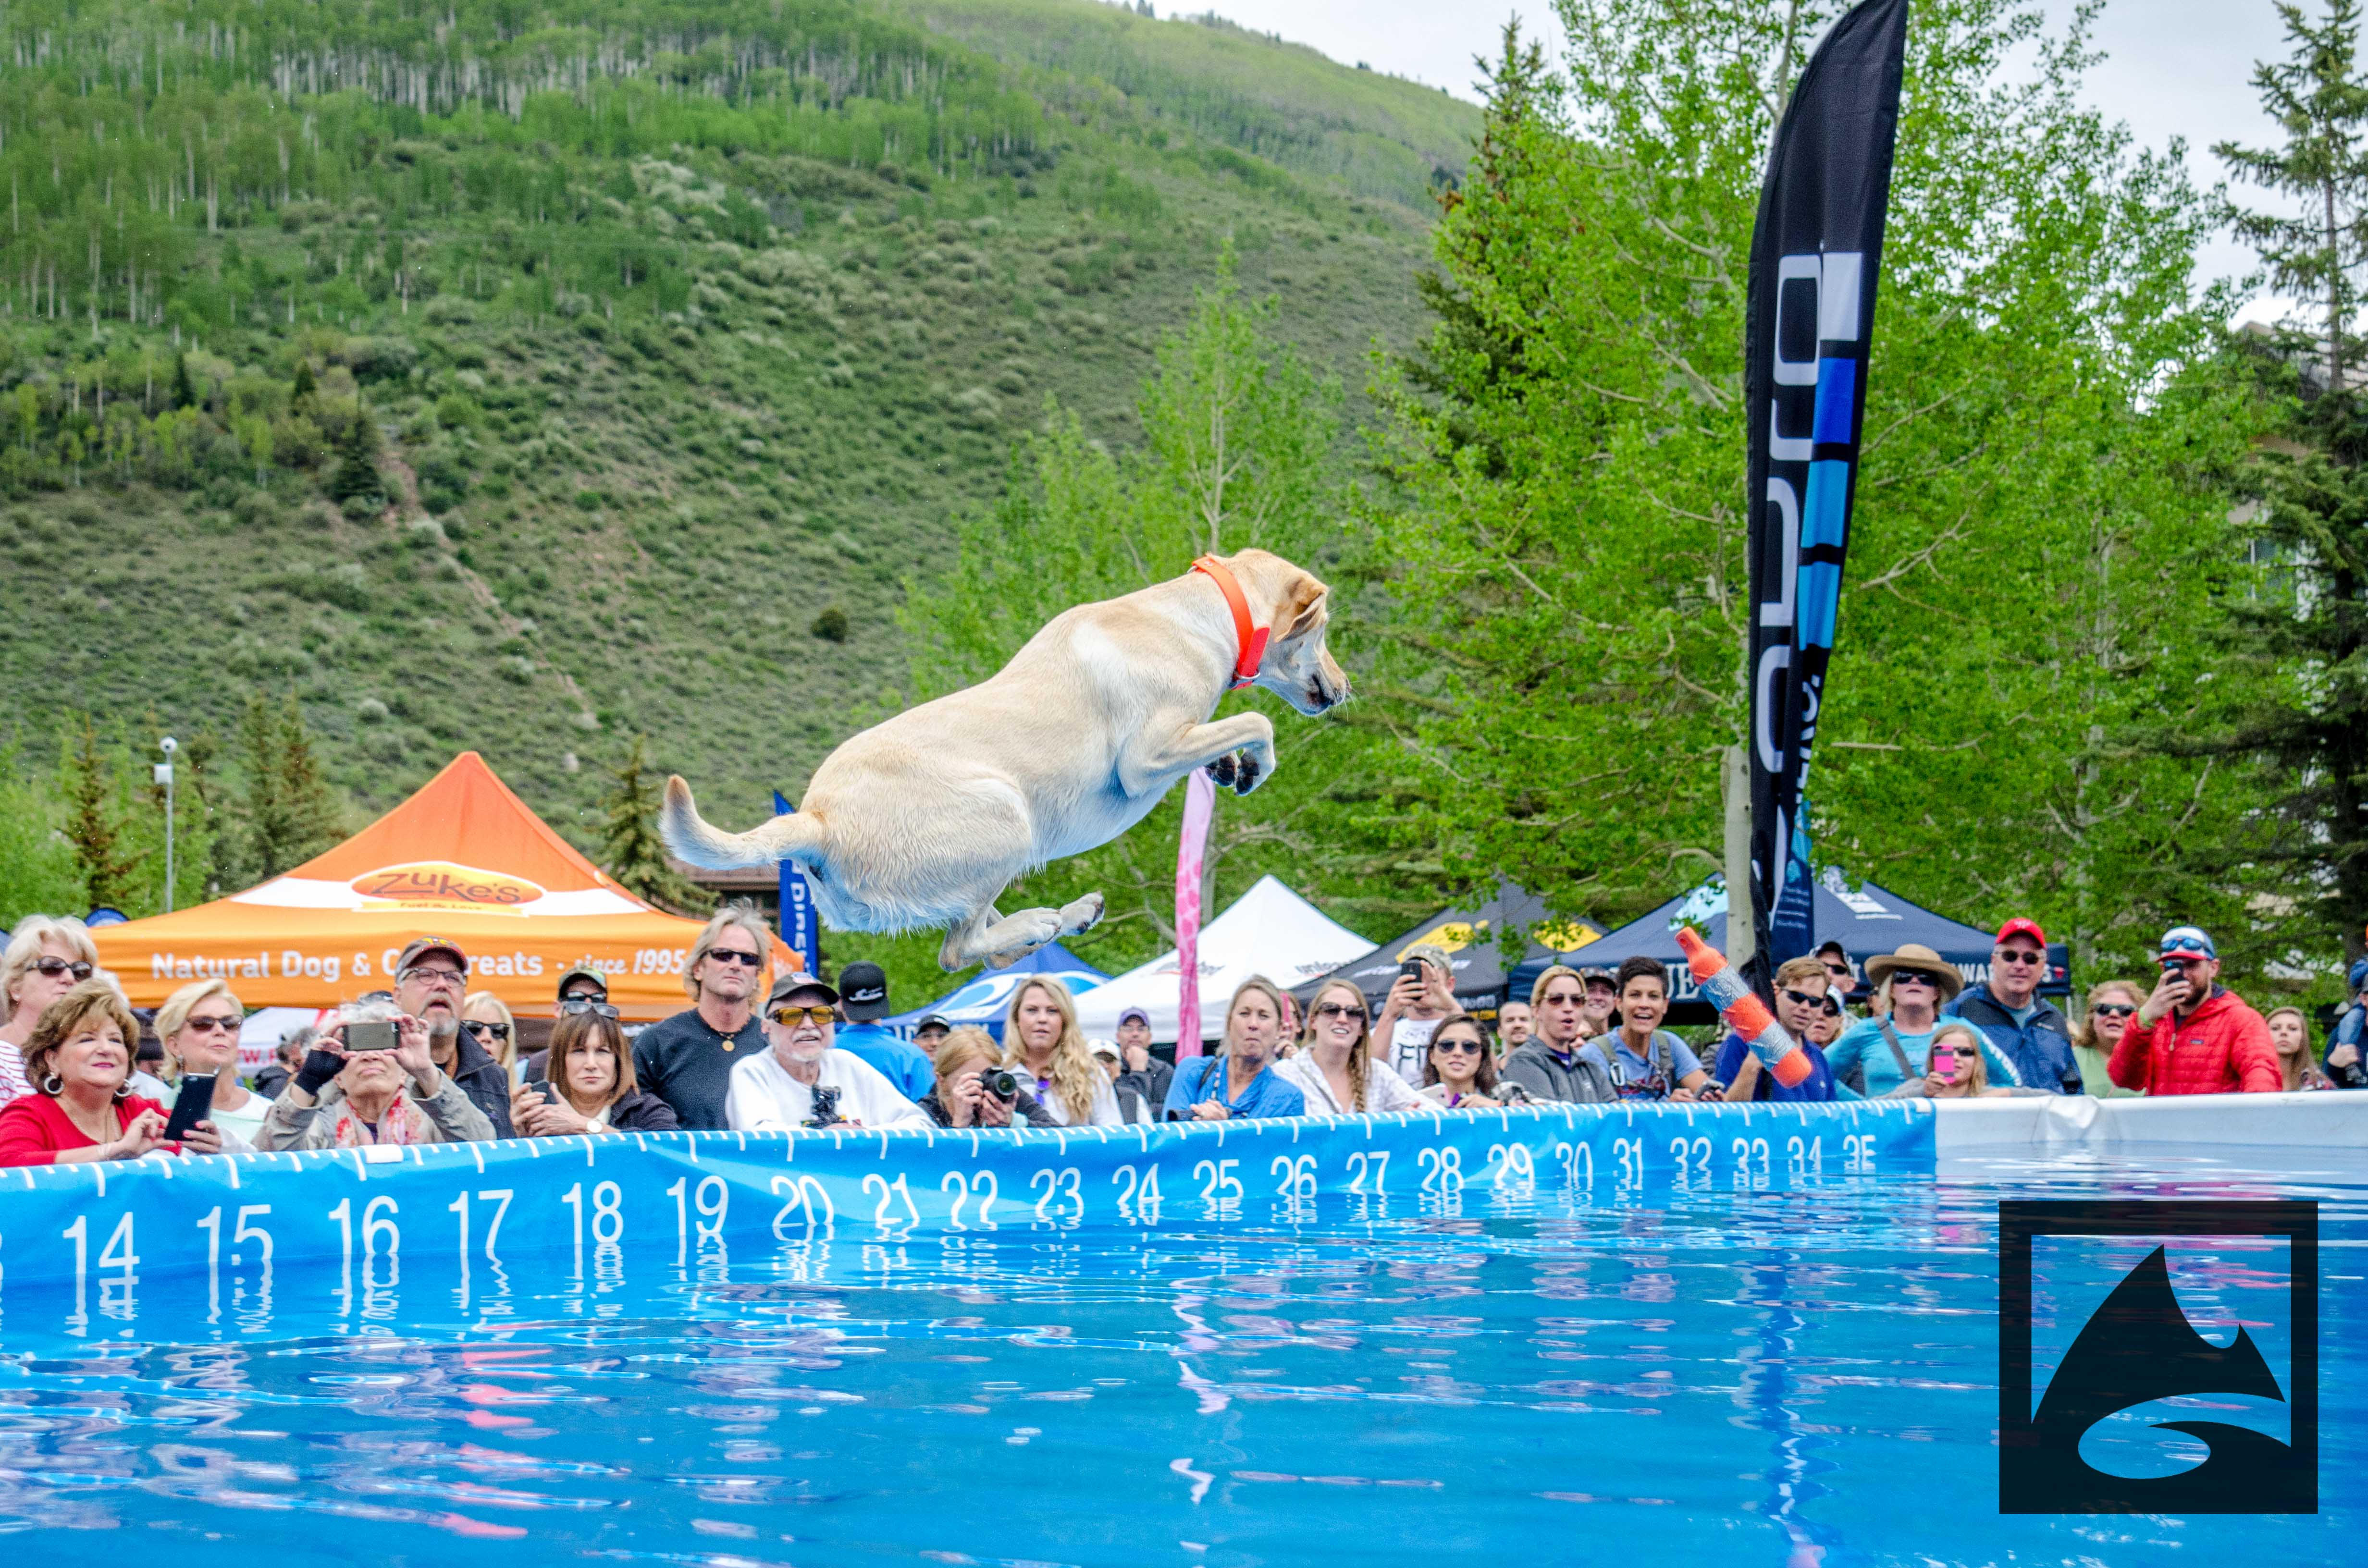 dockdogs-gopro-games-vail